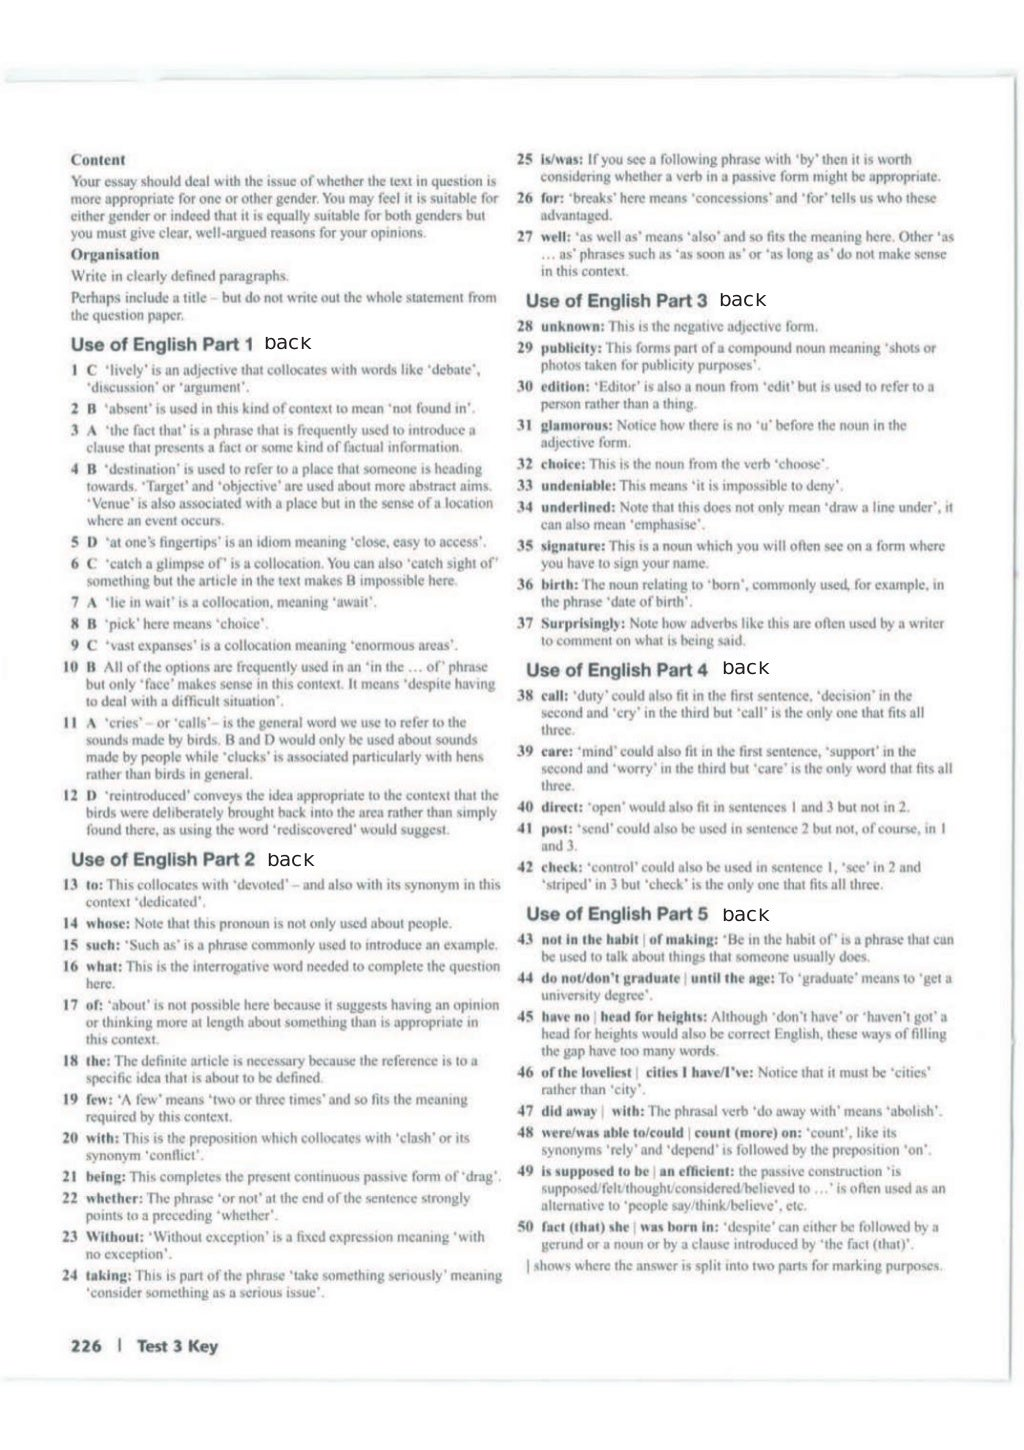 Advanced trainer 6 practice tests with answers book4joy (1) page 227